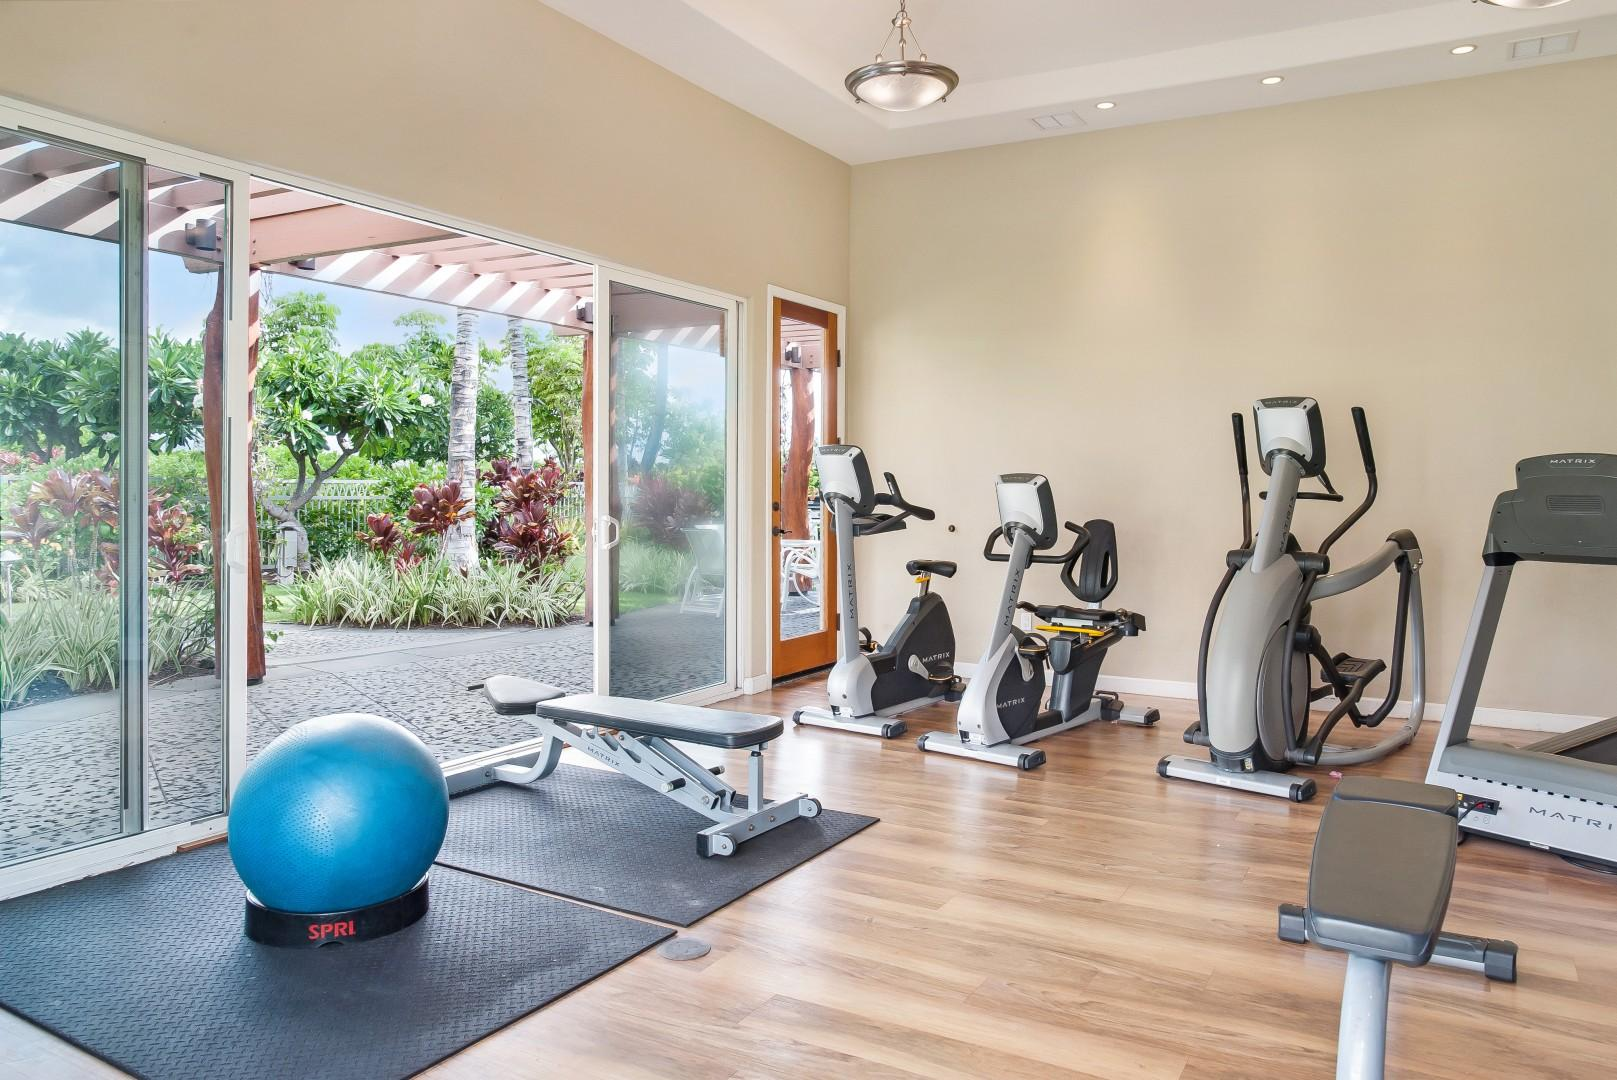 Alternative View of Fitness Center Next to Pool & Directly Across From Villa